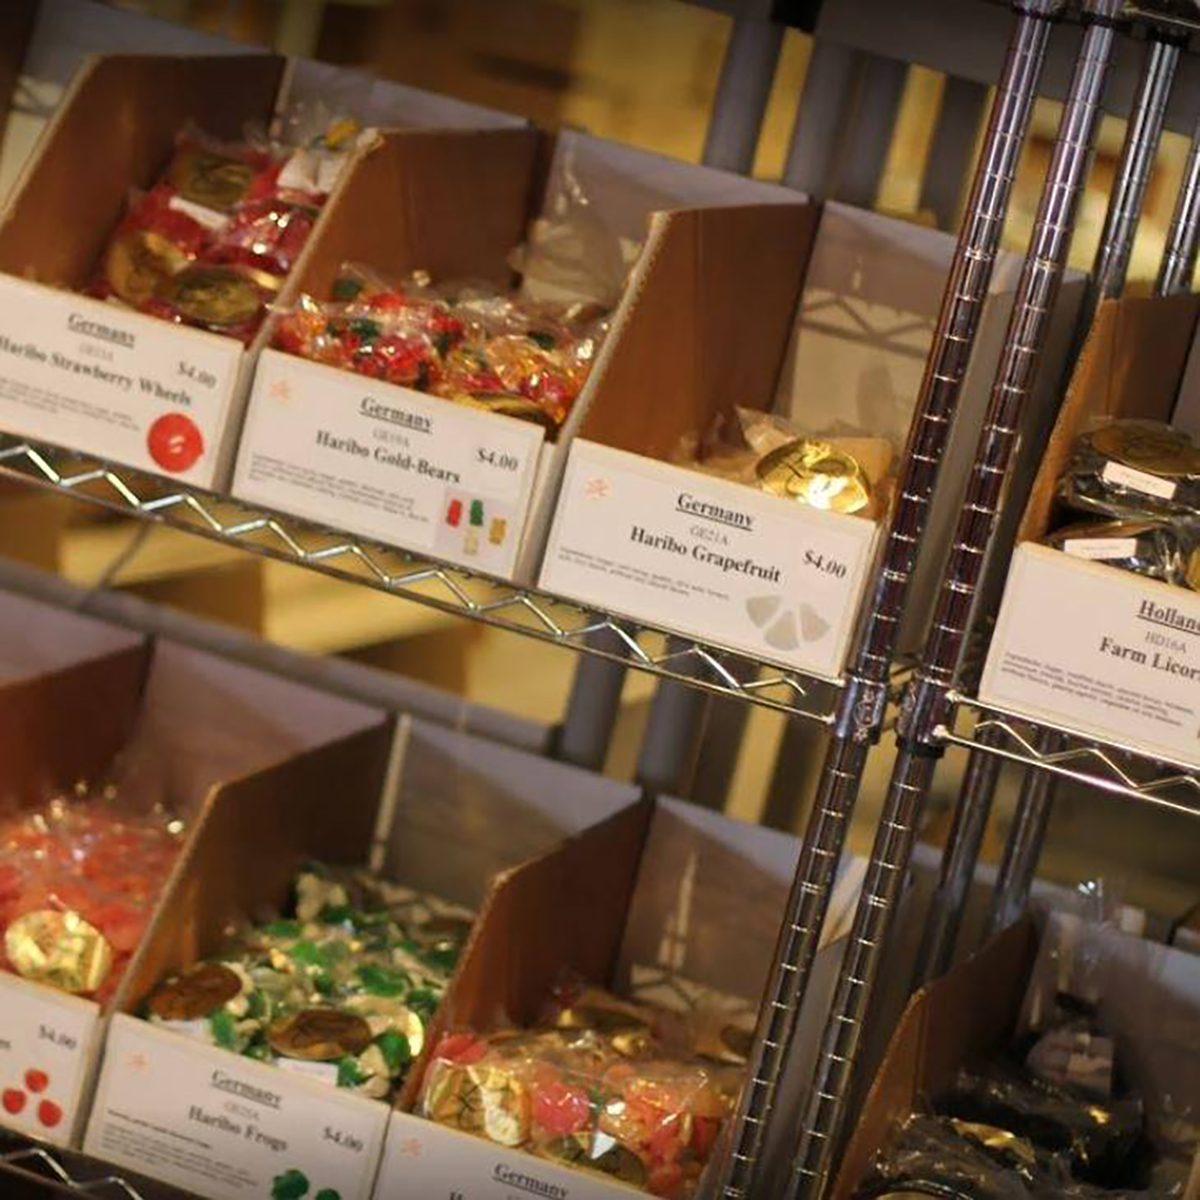 Licorice International, The best candy shop in every state